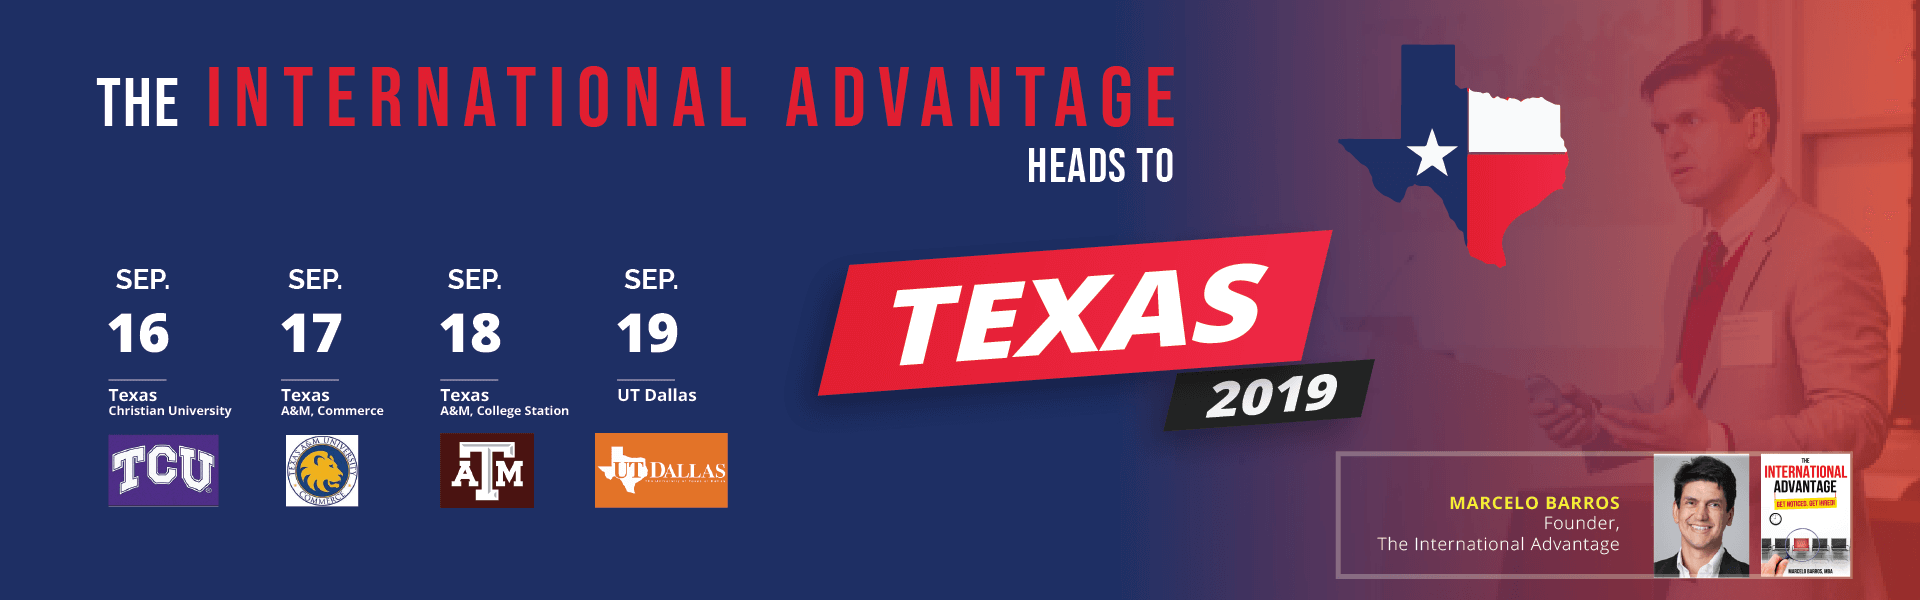 The International Advantages Heads to Texas